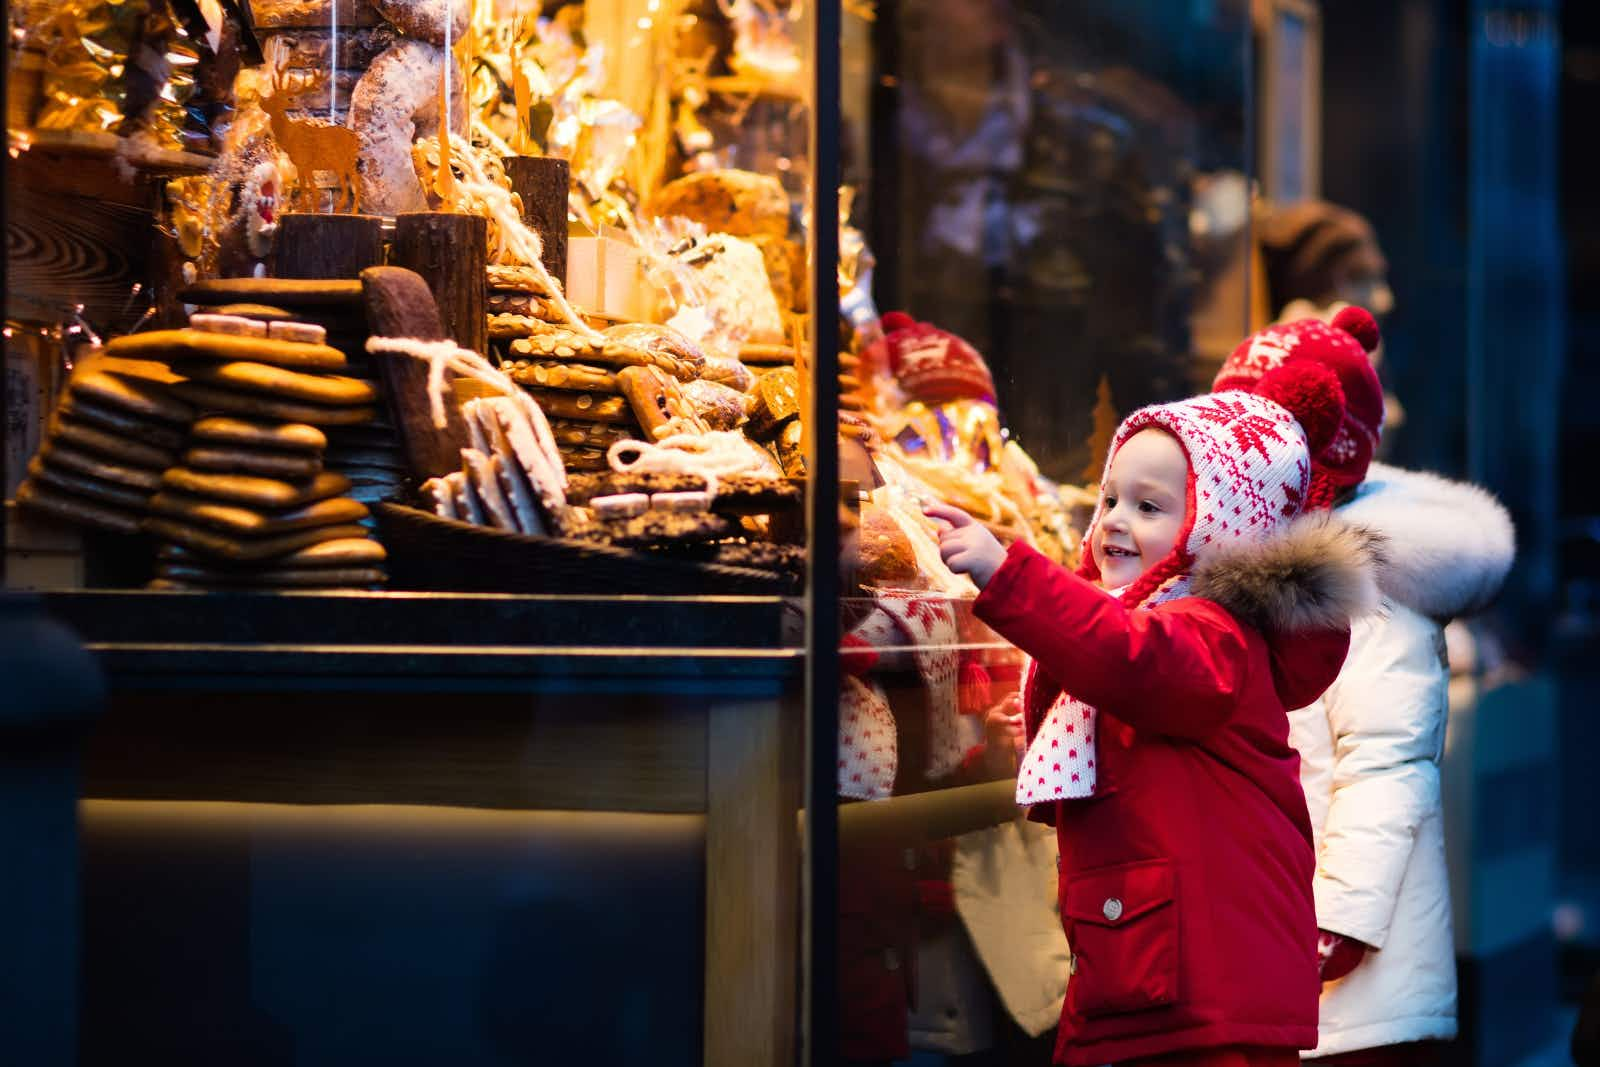 Food plays a huge part in the Advent traditions © FamVeld/Getty